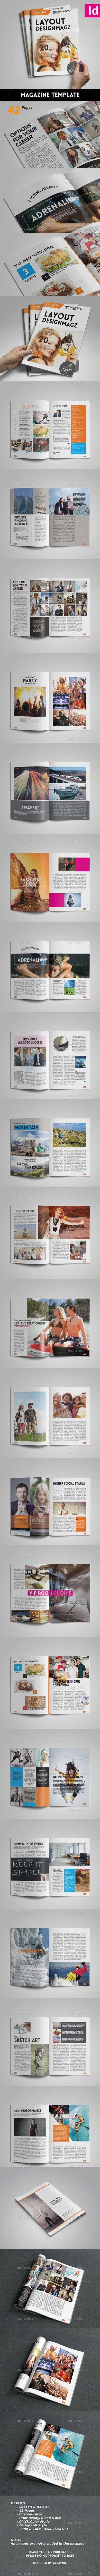 42 Pages | Magazine Template Issue 03 #galleries #indesign #letter • Available here → http://graphicriver.net/item/42-pages-magazine-template-issue-03/11101052?s_rank=388&ref=pxcr